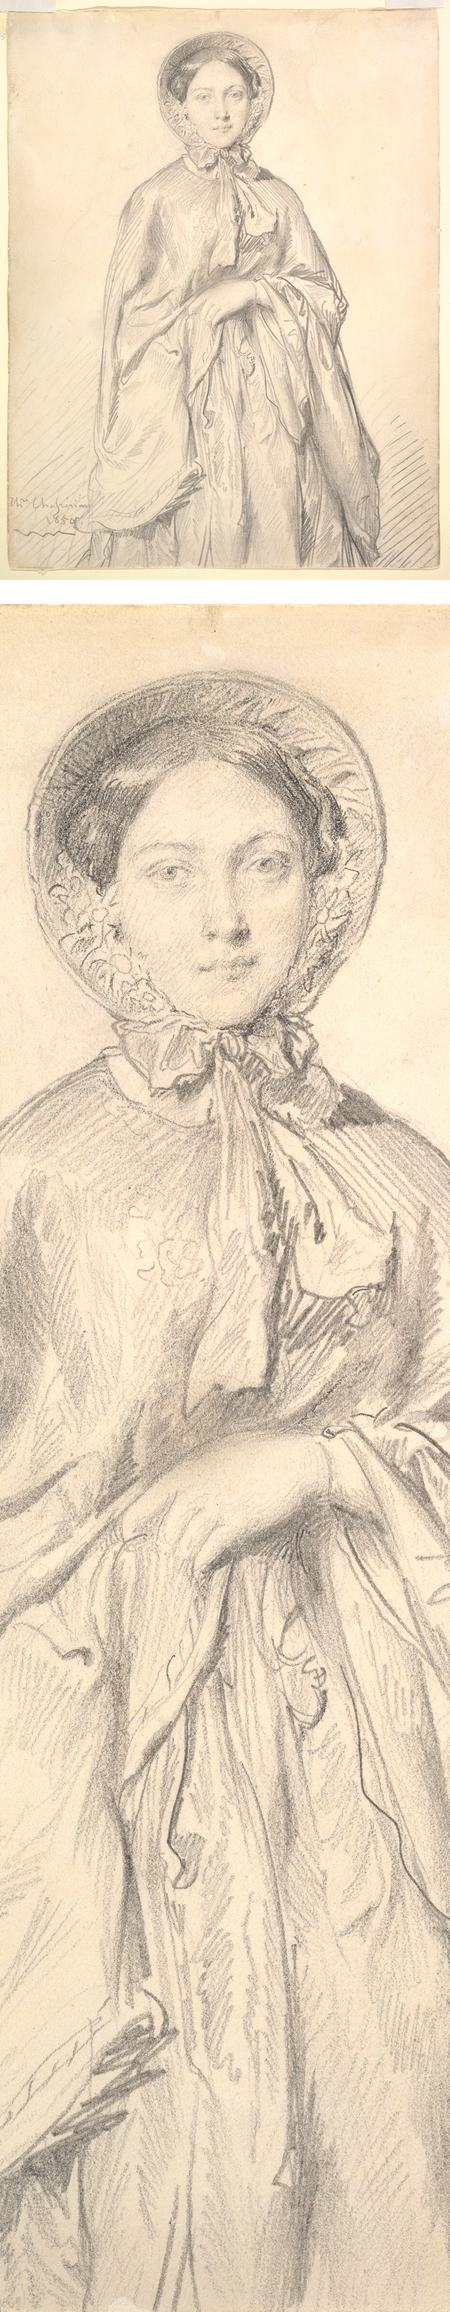 Portrait of a Young Woman Wearing a Cloak and Bonnet, Theodore Chasseriau, graphite on wove paper